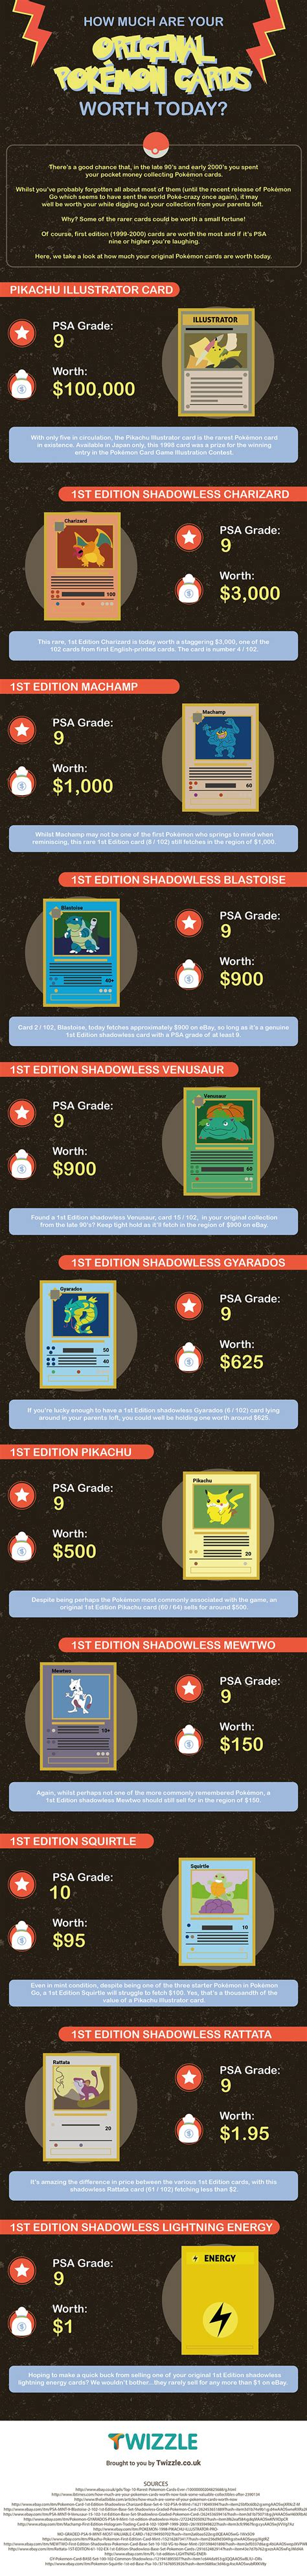 How Much Is On A Gift Card - how much are your original pok 233 mon cards worth today infographic twizzle